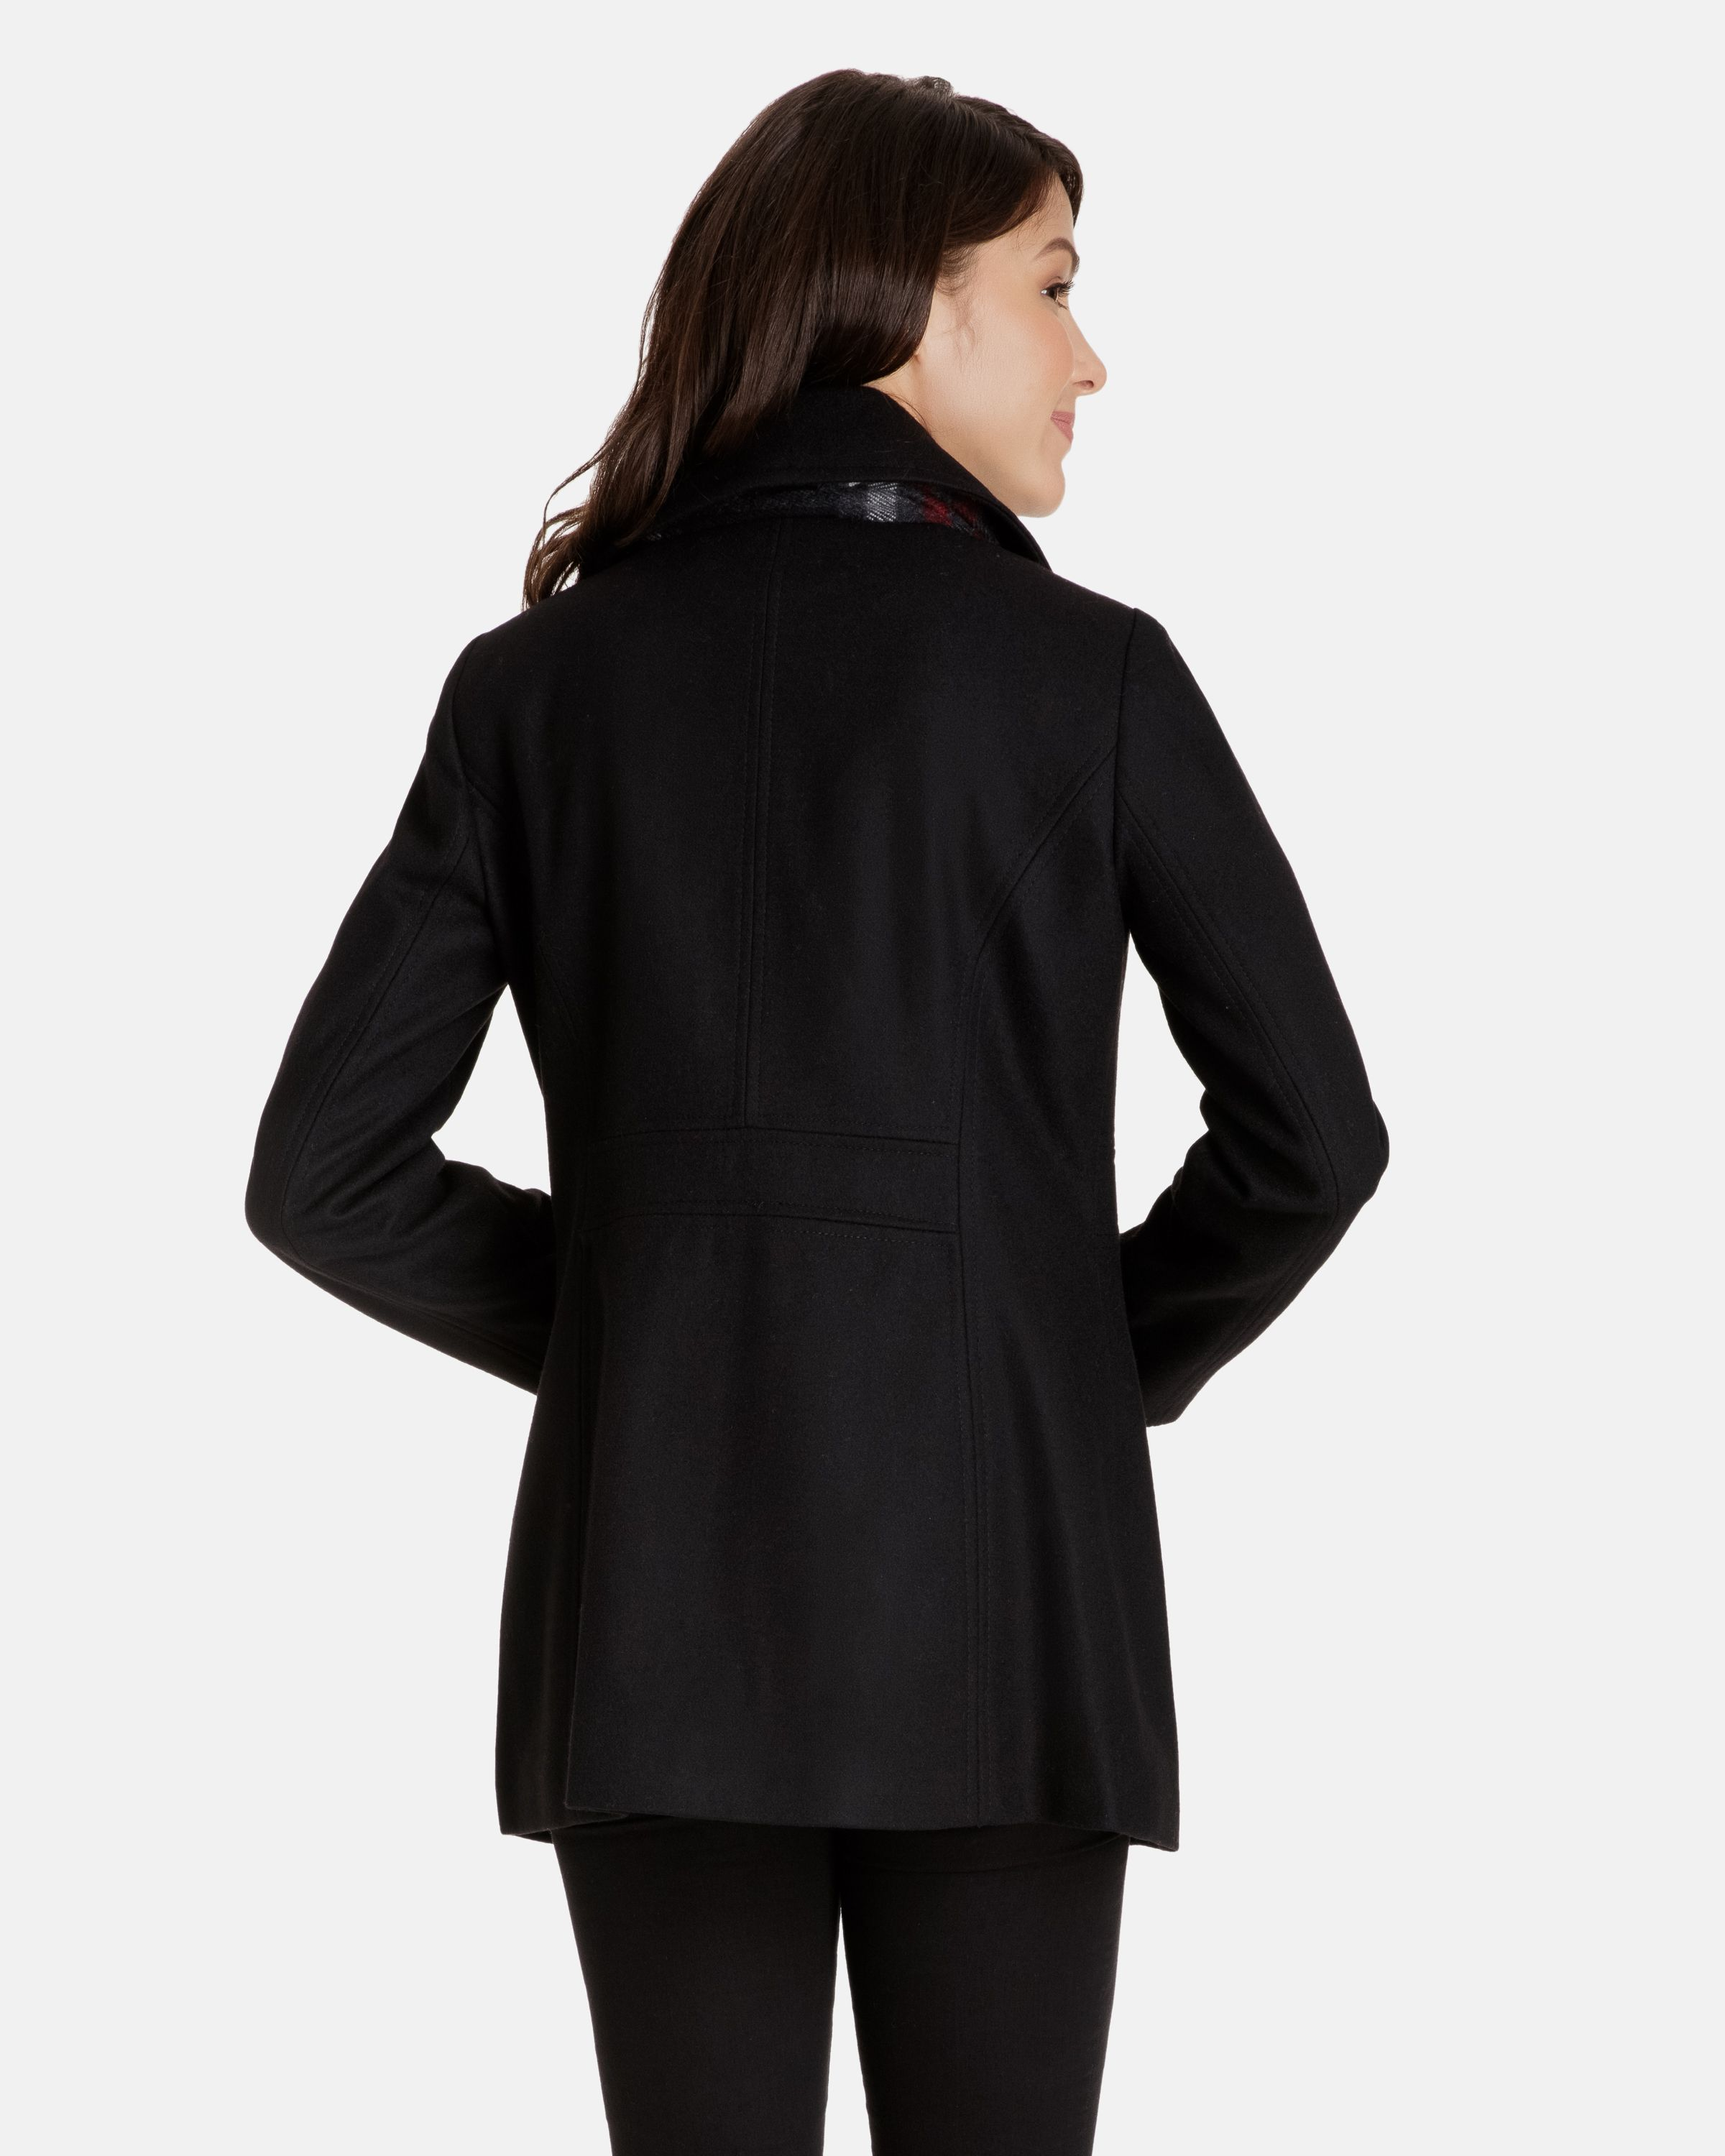 4205e448a11d9 Quinn Double Breasted Wool Pea Coat for Women - Scarf